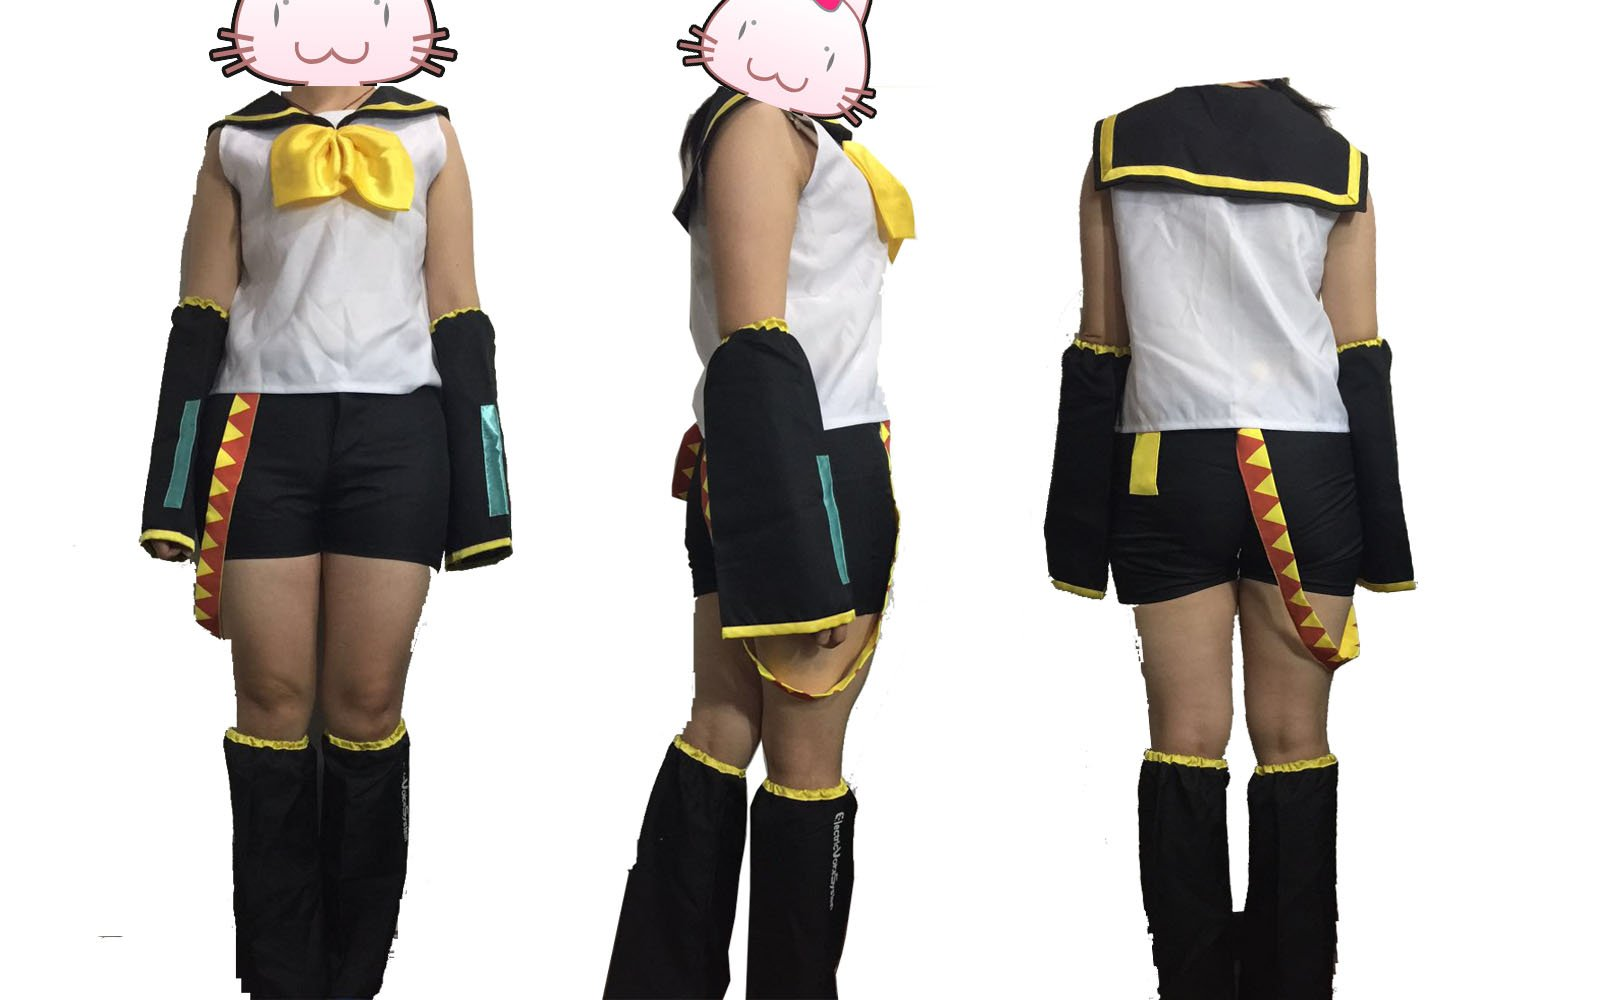 fantasycart Vocaloid 2 Rin Kagamine Cosplay Halloween Costume Complete Set Size S